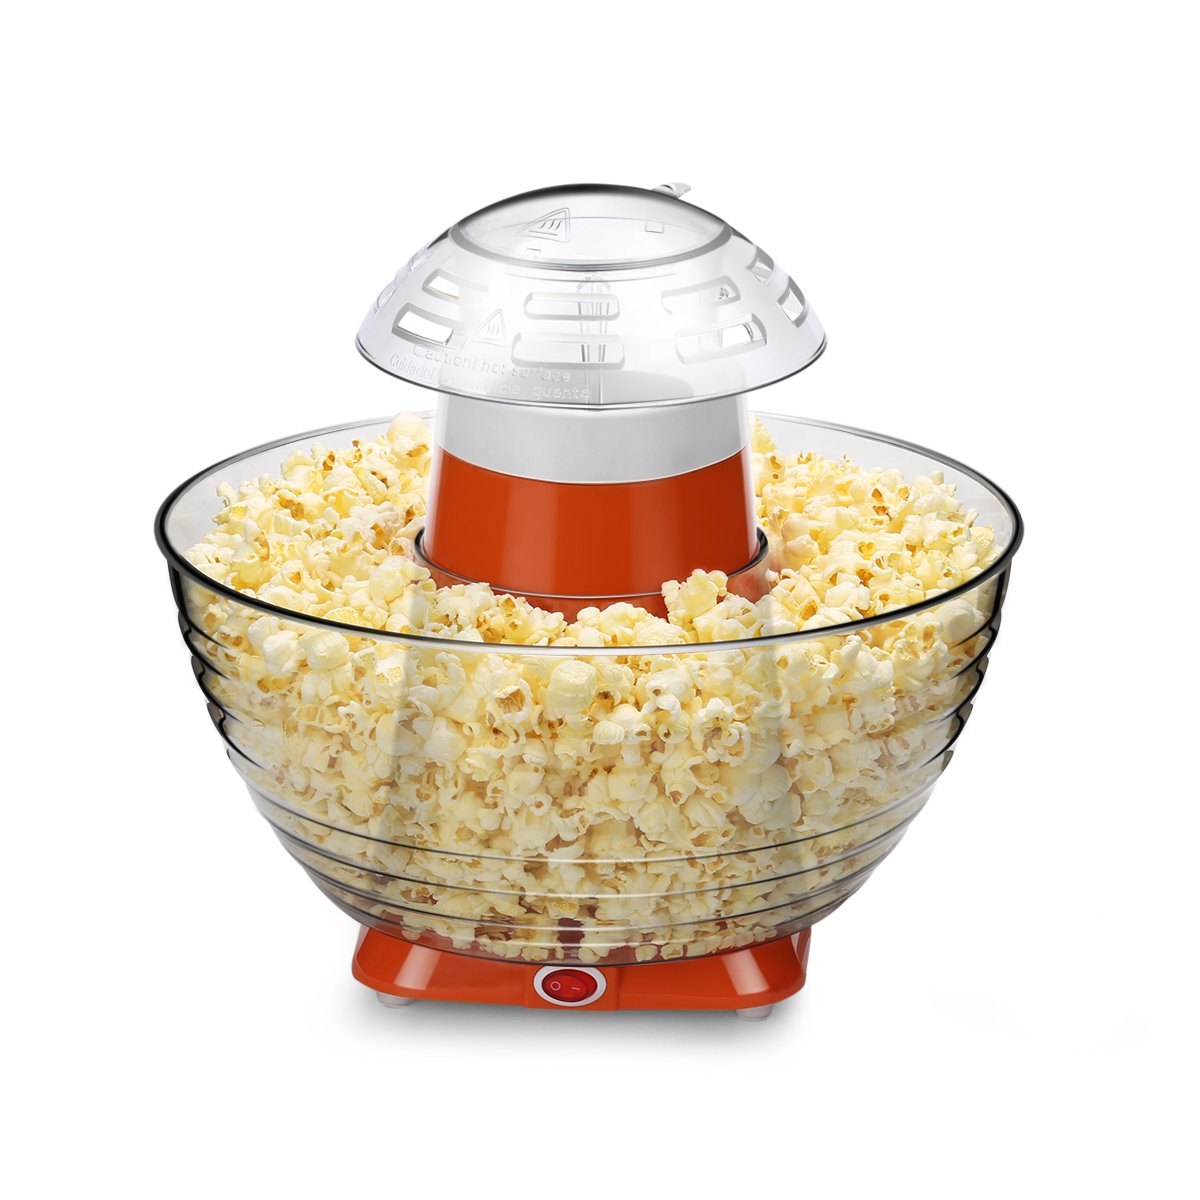 Home Kitchen Electric Popcorn Machine, Hot Air-pop Popper Corn Maker 16 Cups Family Size of Popcorn with Collapsible Bowl, No Oil Needed, Easy Cleaning & Simple to Use (Orange)